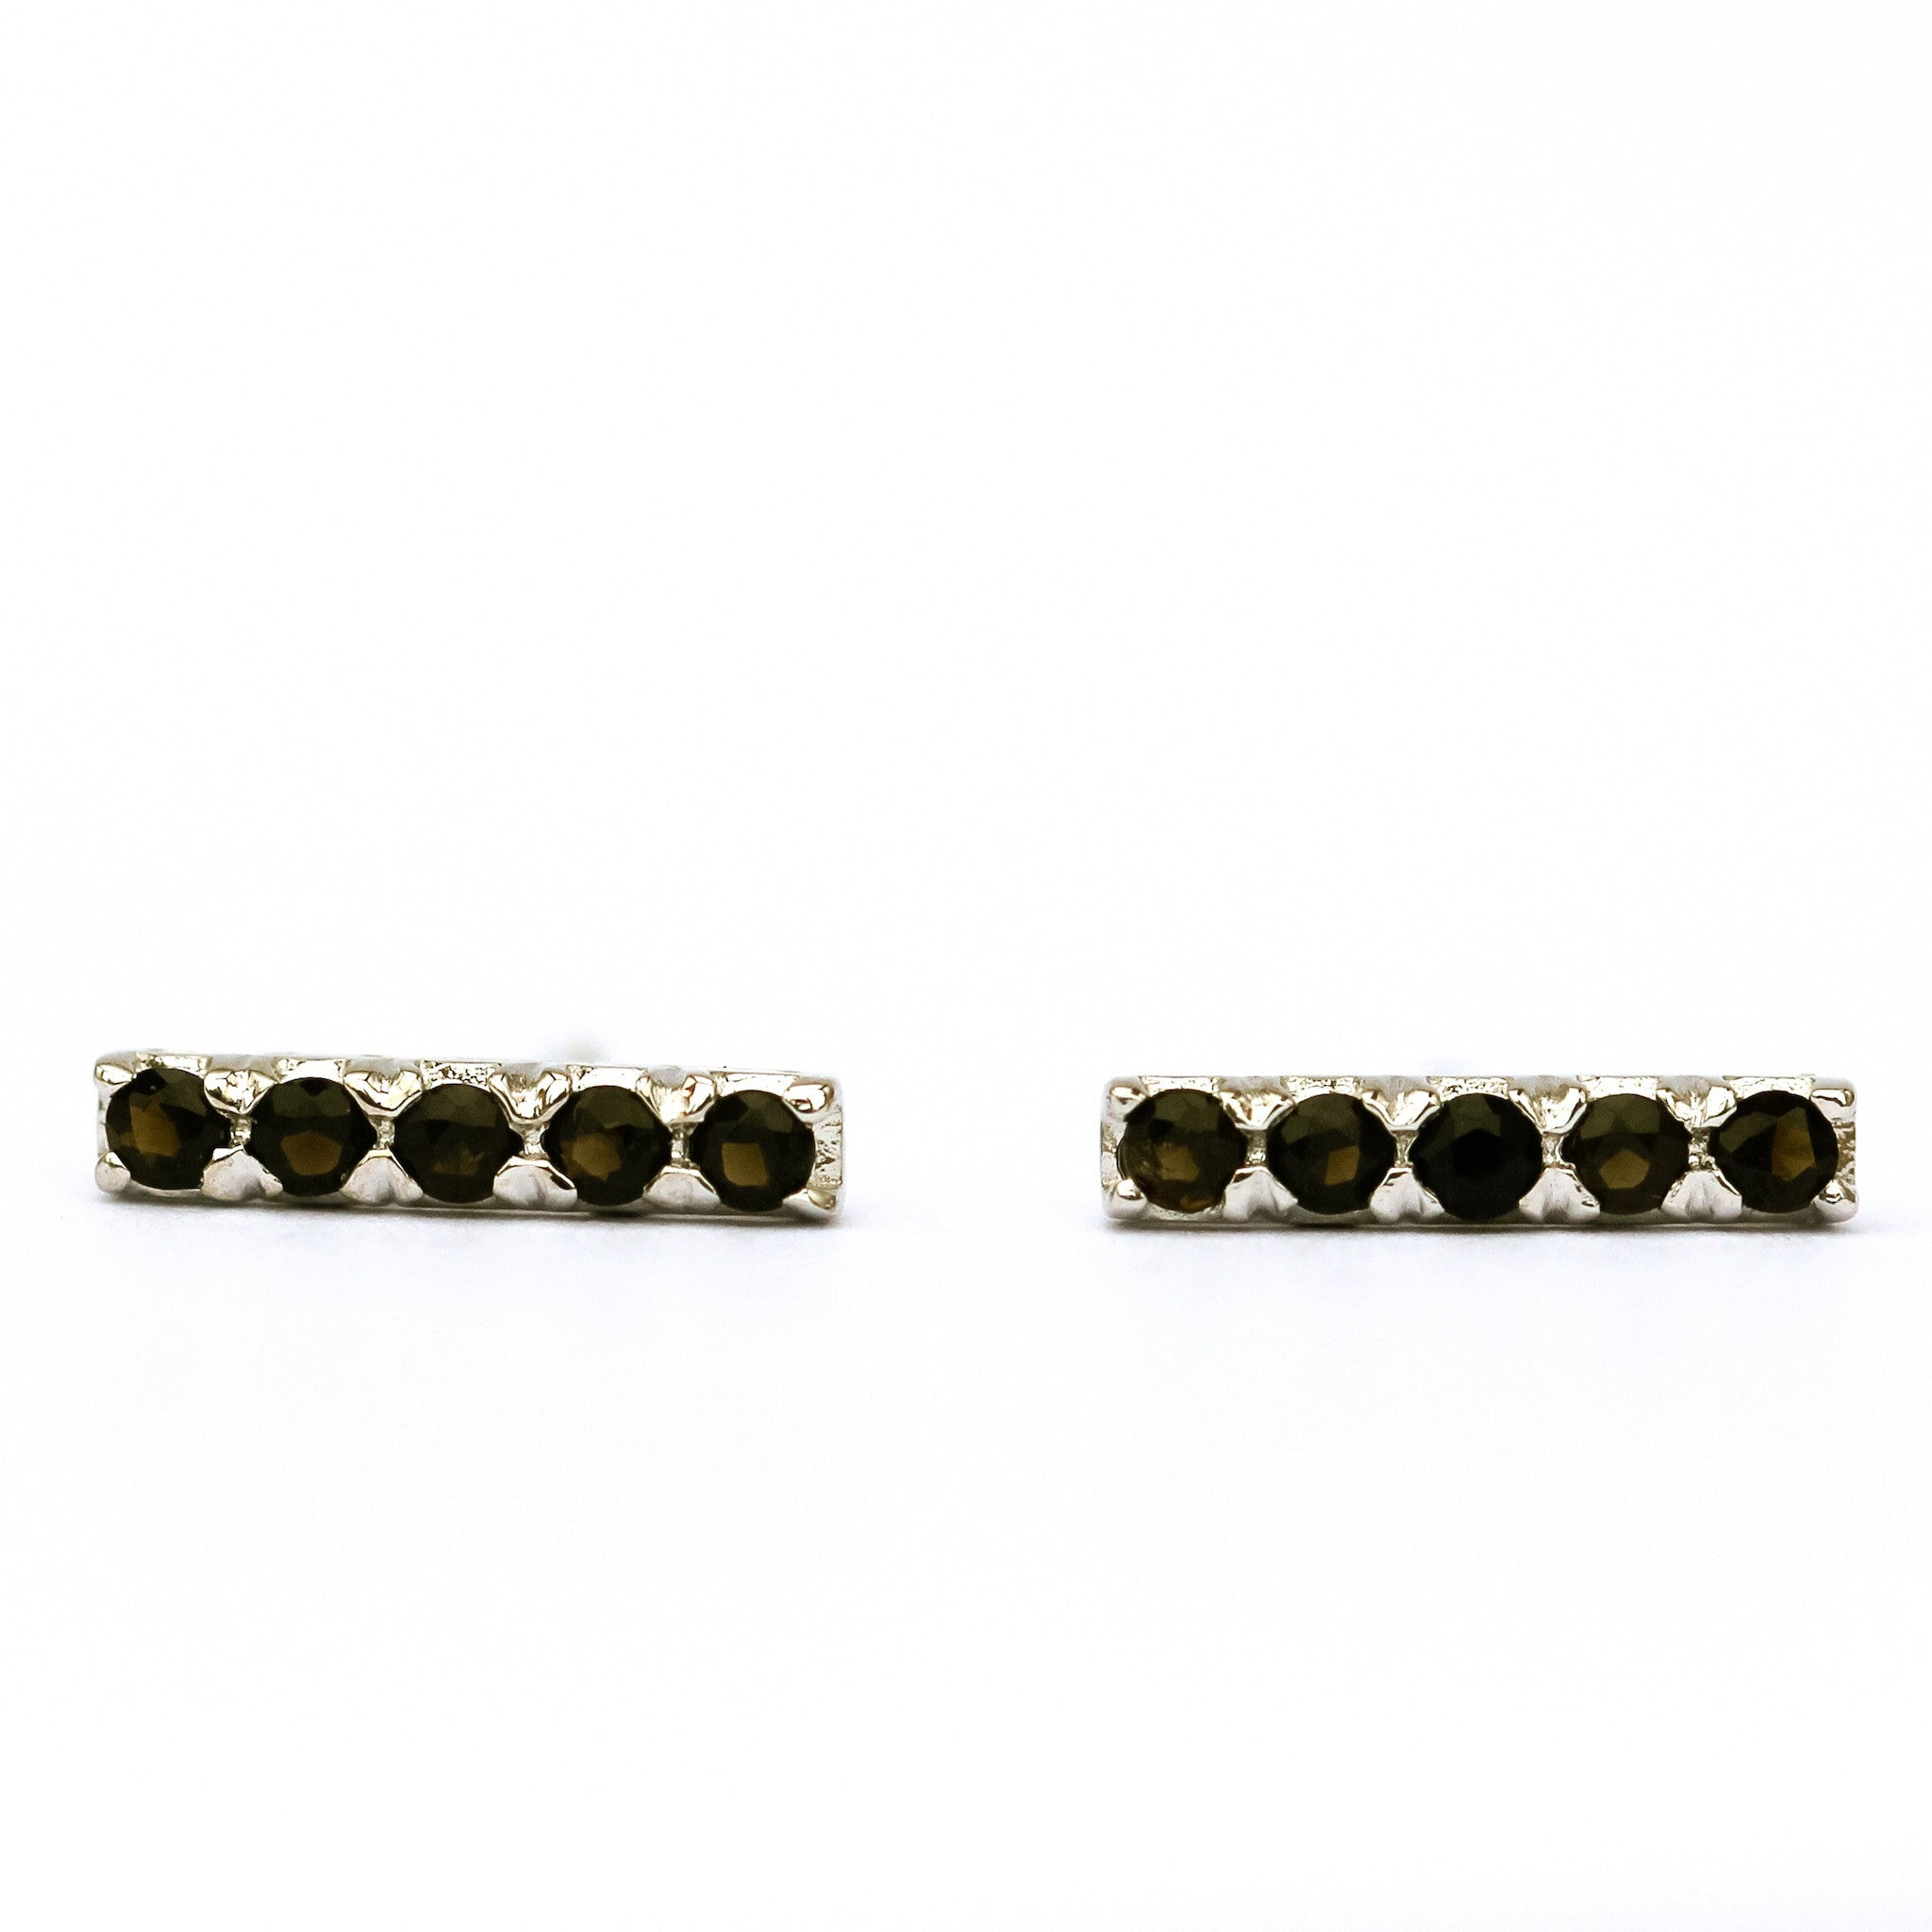 Pave Bar Stud Earring - White Gold & Smoky Quartz